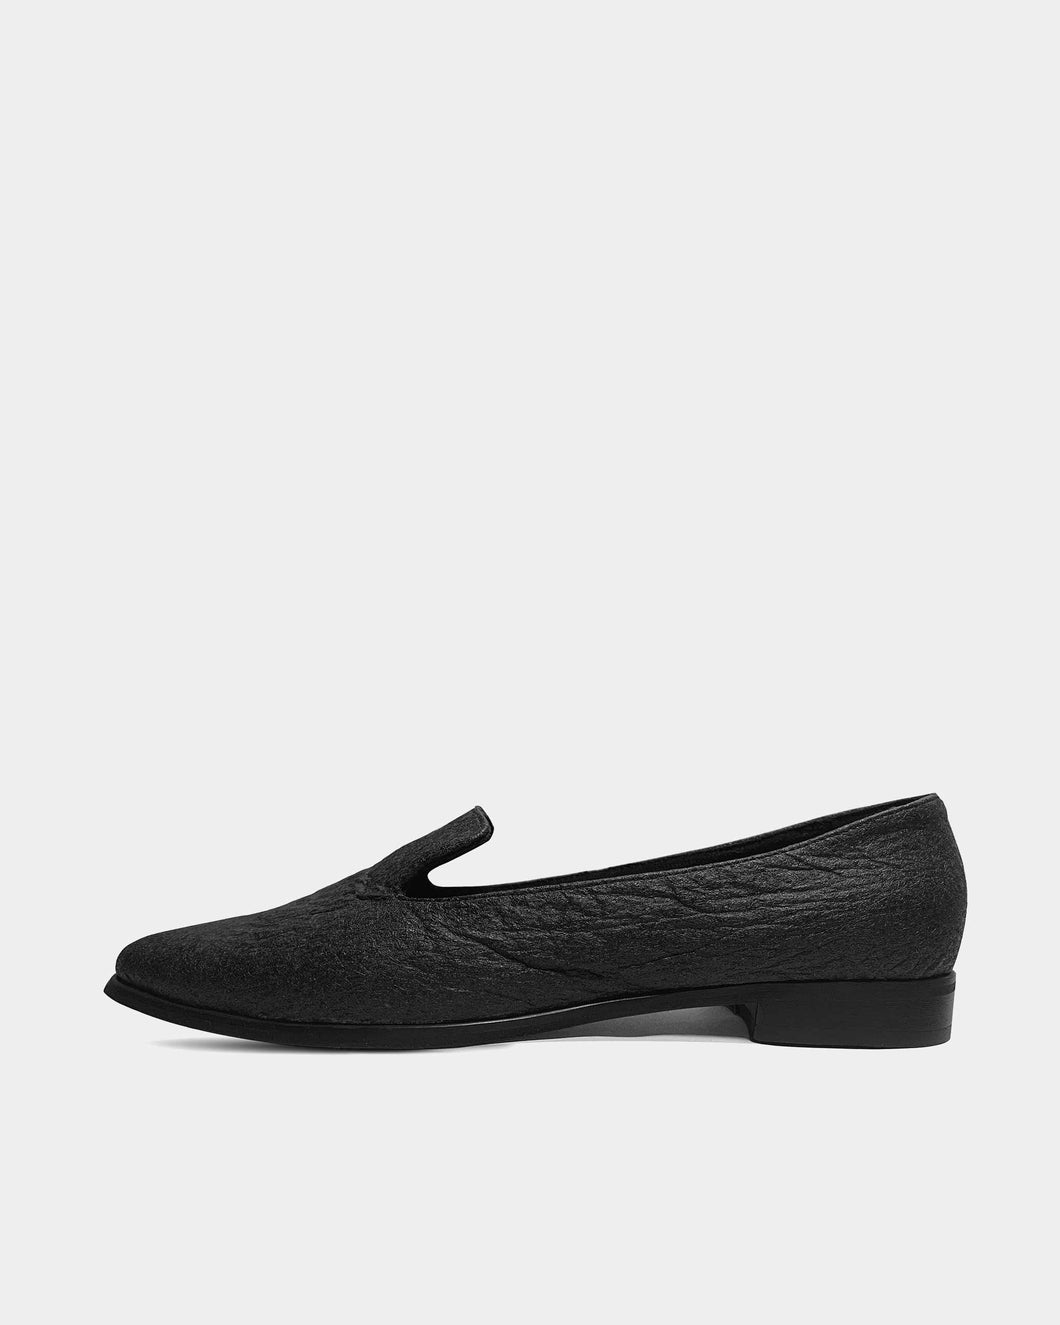 Lords Black Pina loafers of Pinatex